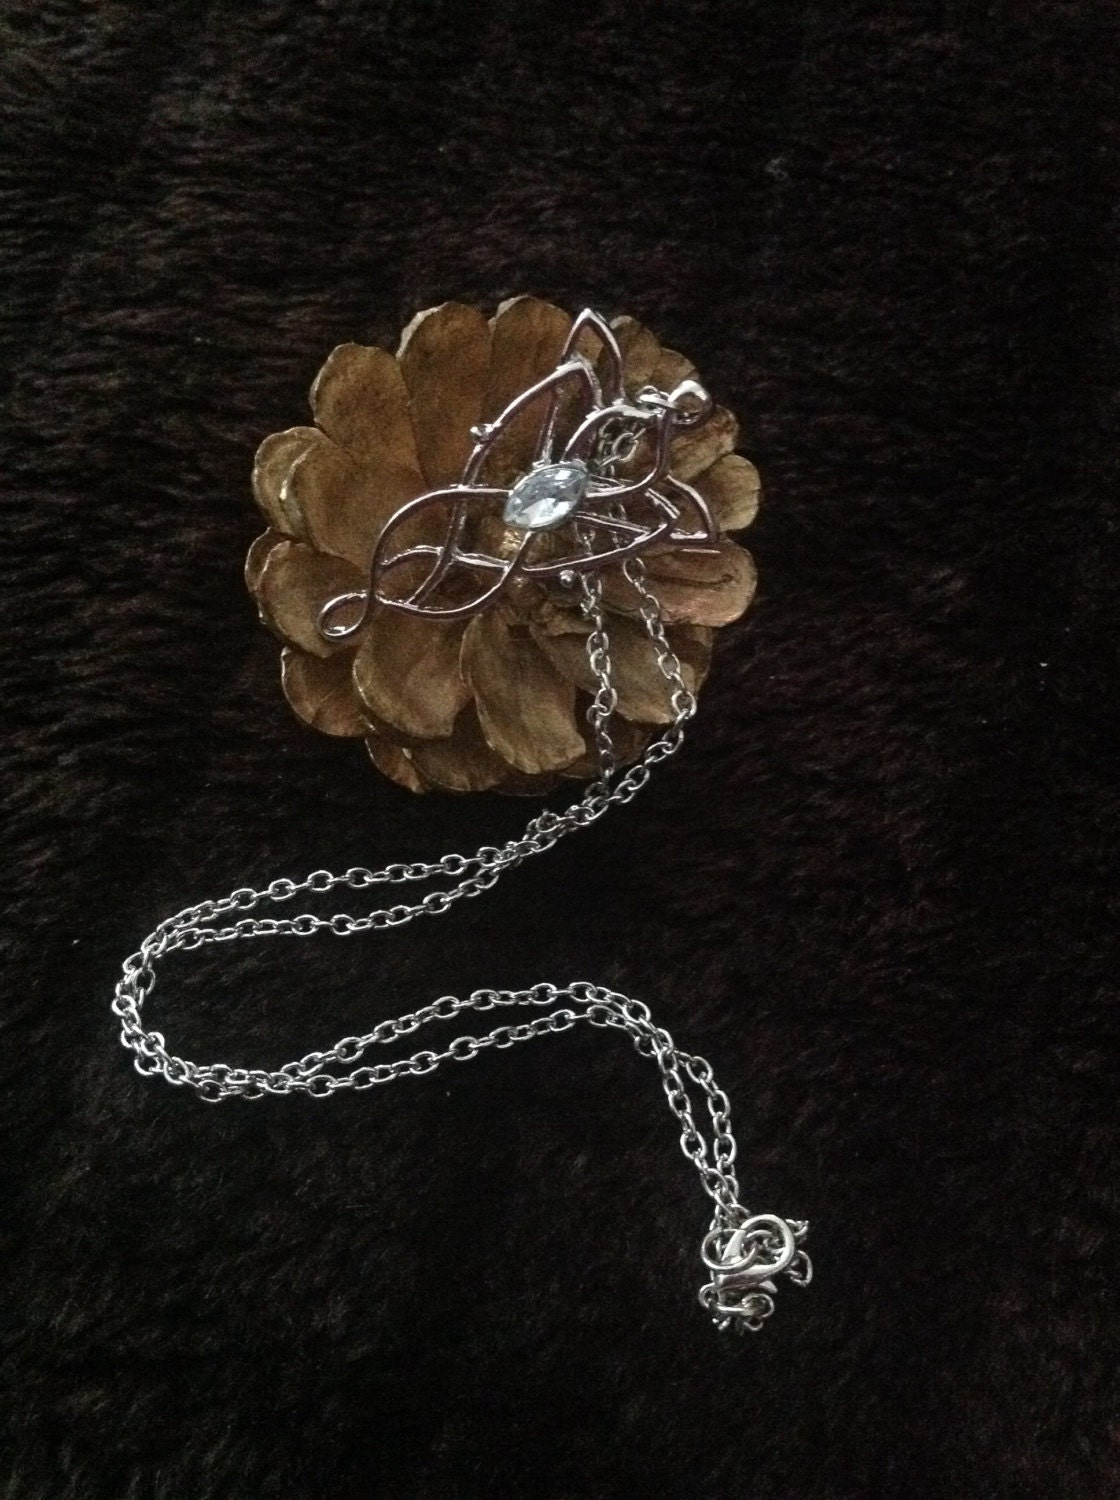 lord of the rings inspired necklace